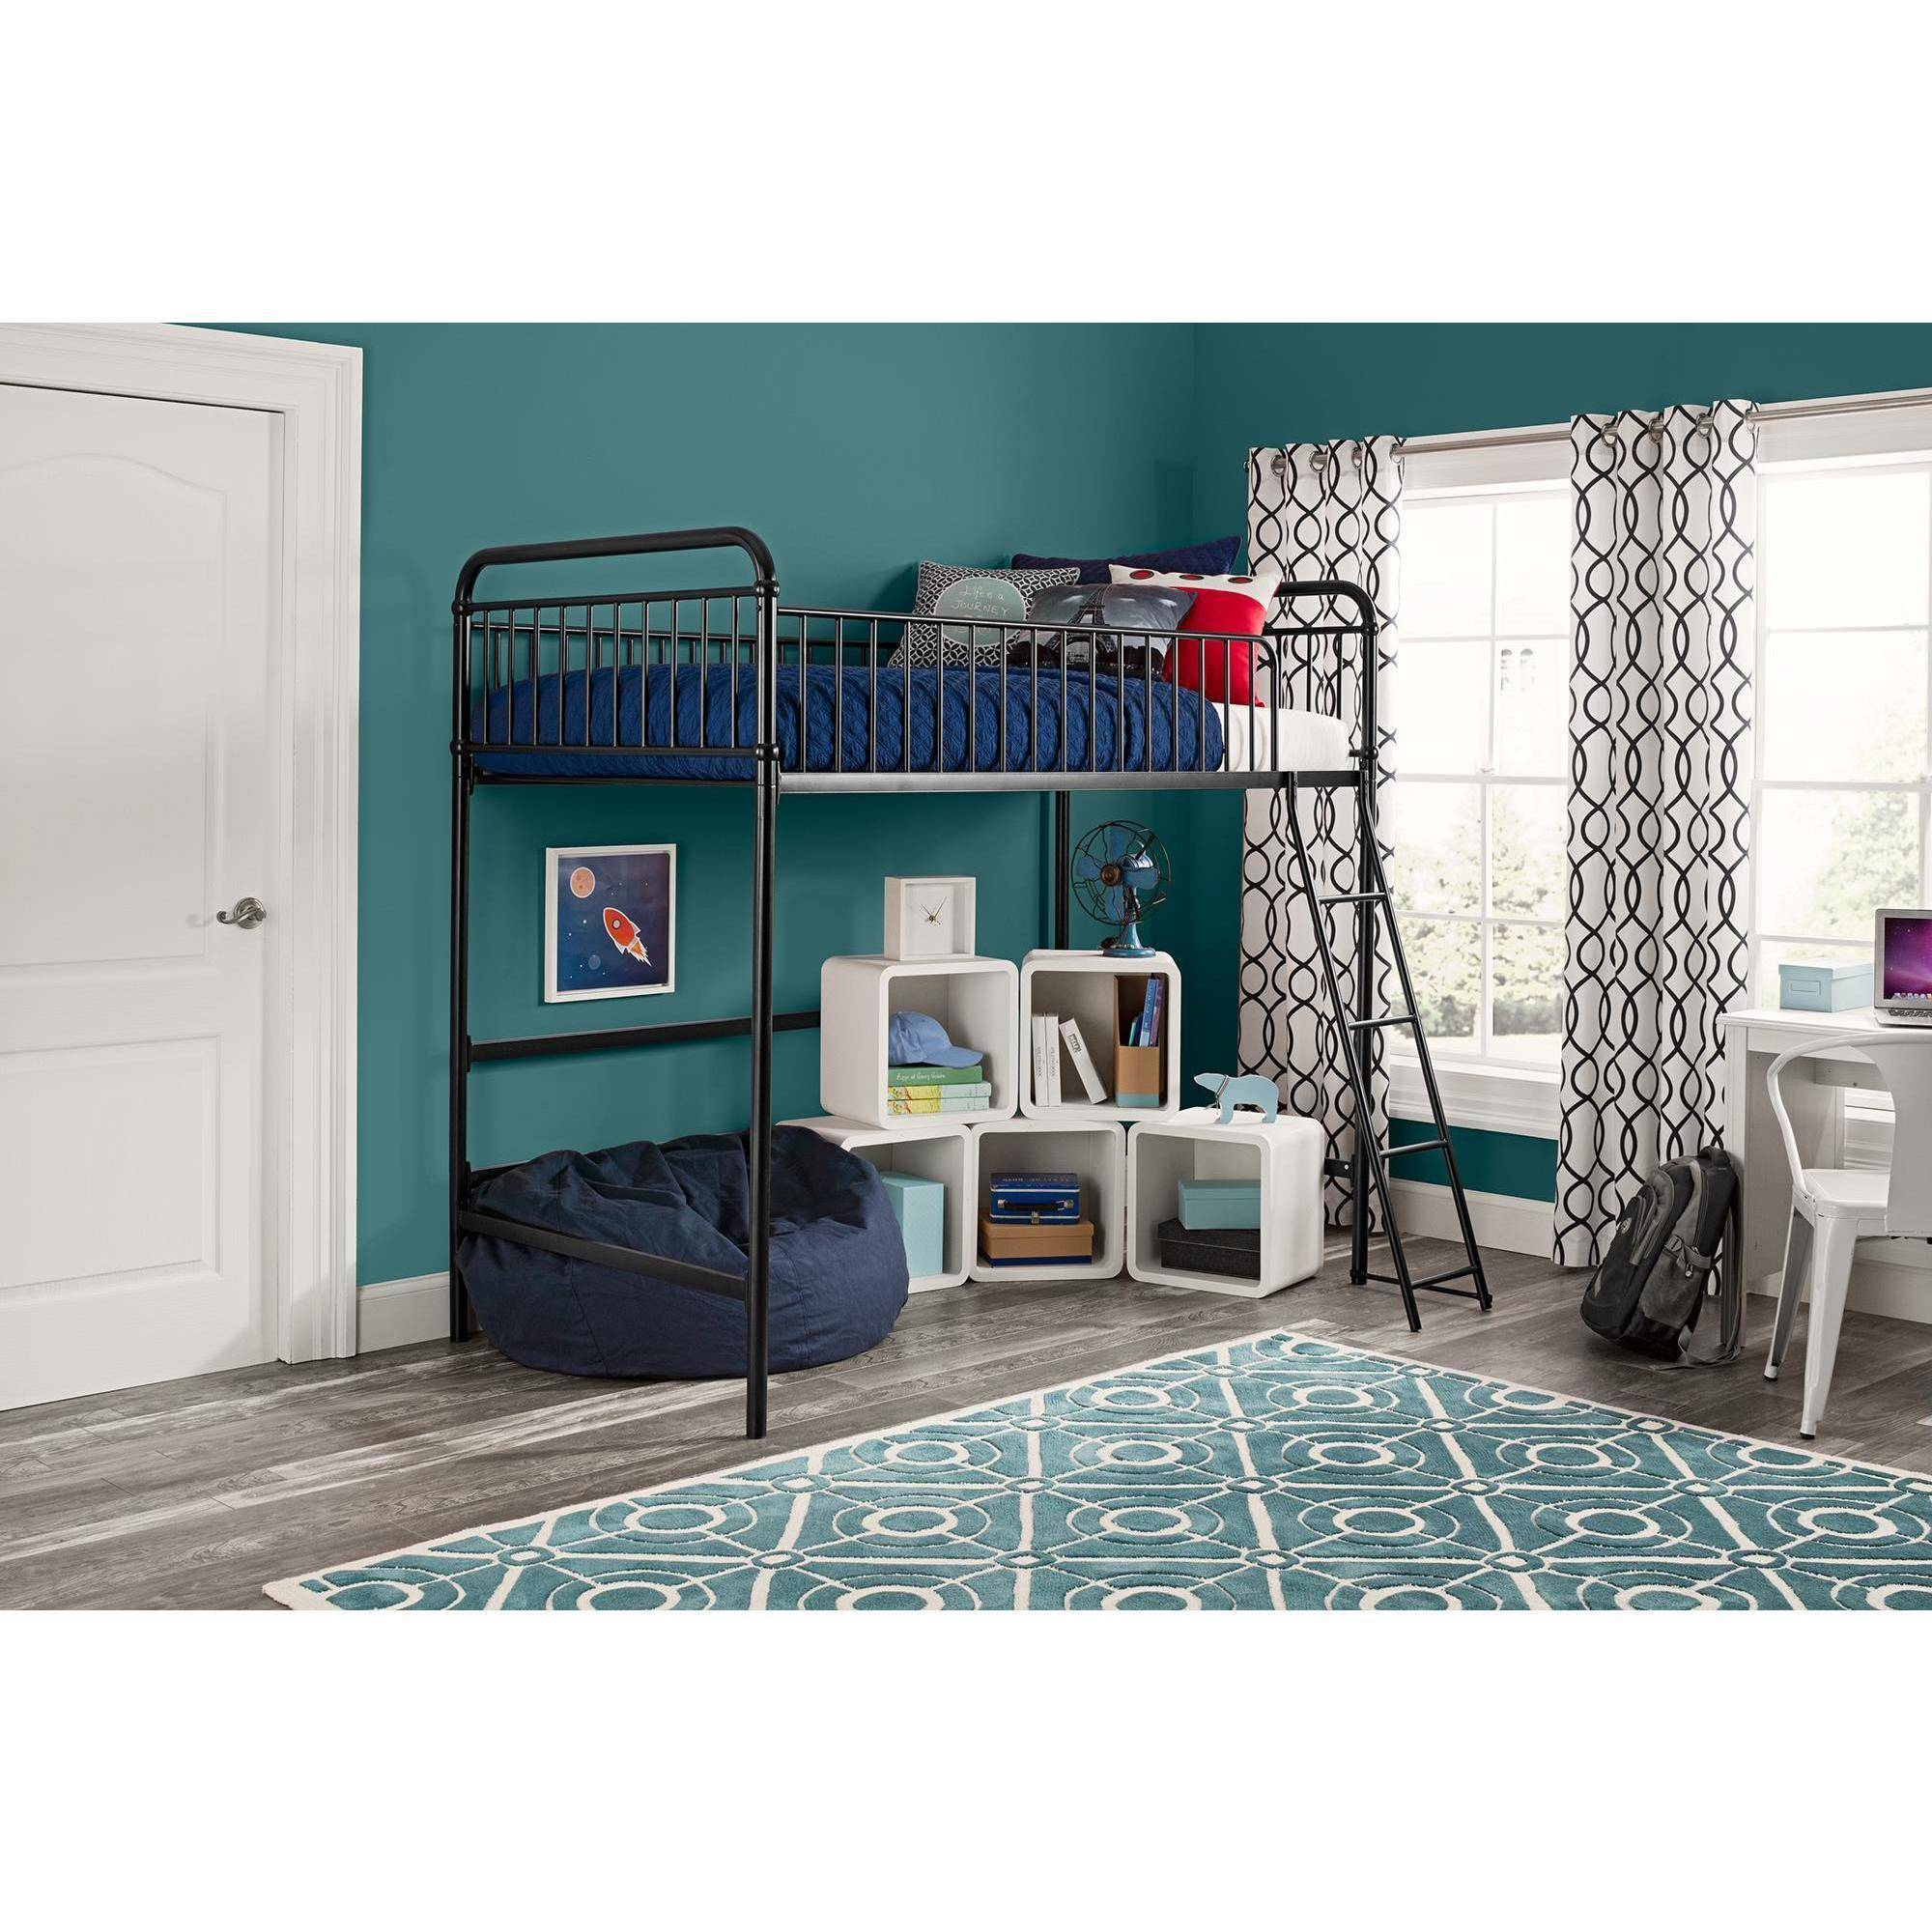 Image is loading Better Homes and Gardens Kelsey Twin Metal Loft. Better Homes and Gardens Kelsey Twin Metal Loft Bed  White   eBay